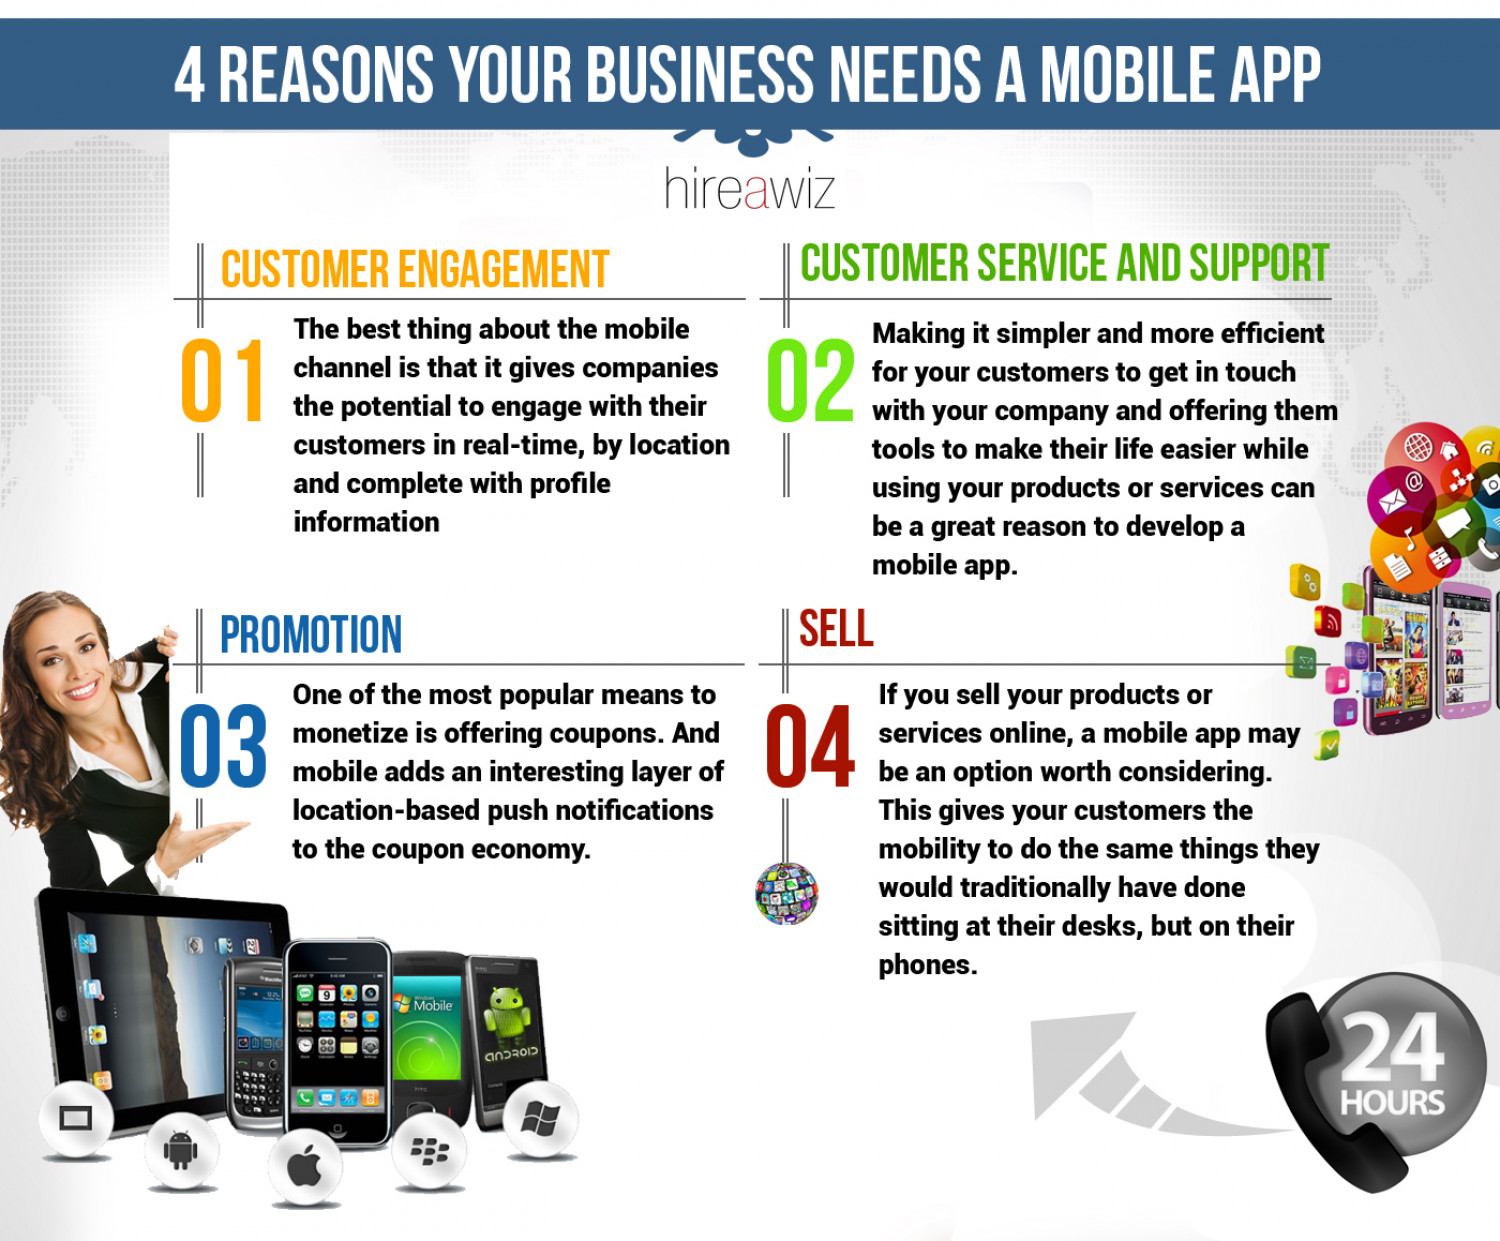 4 Reasons Your Business Needs a Mobile App Infographic